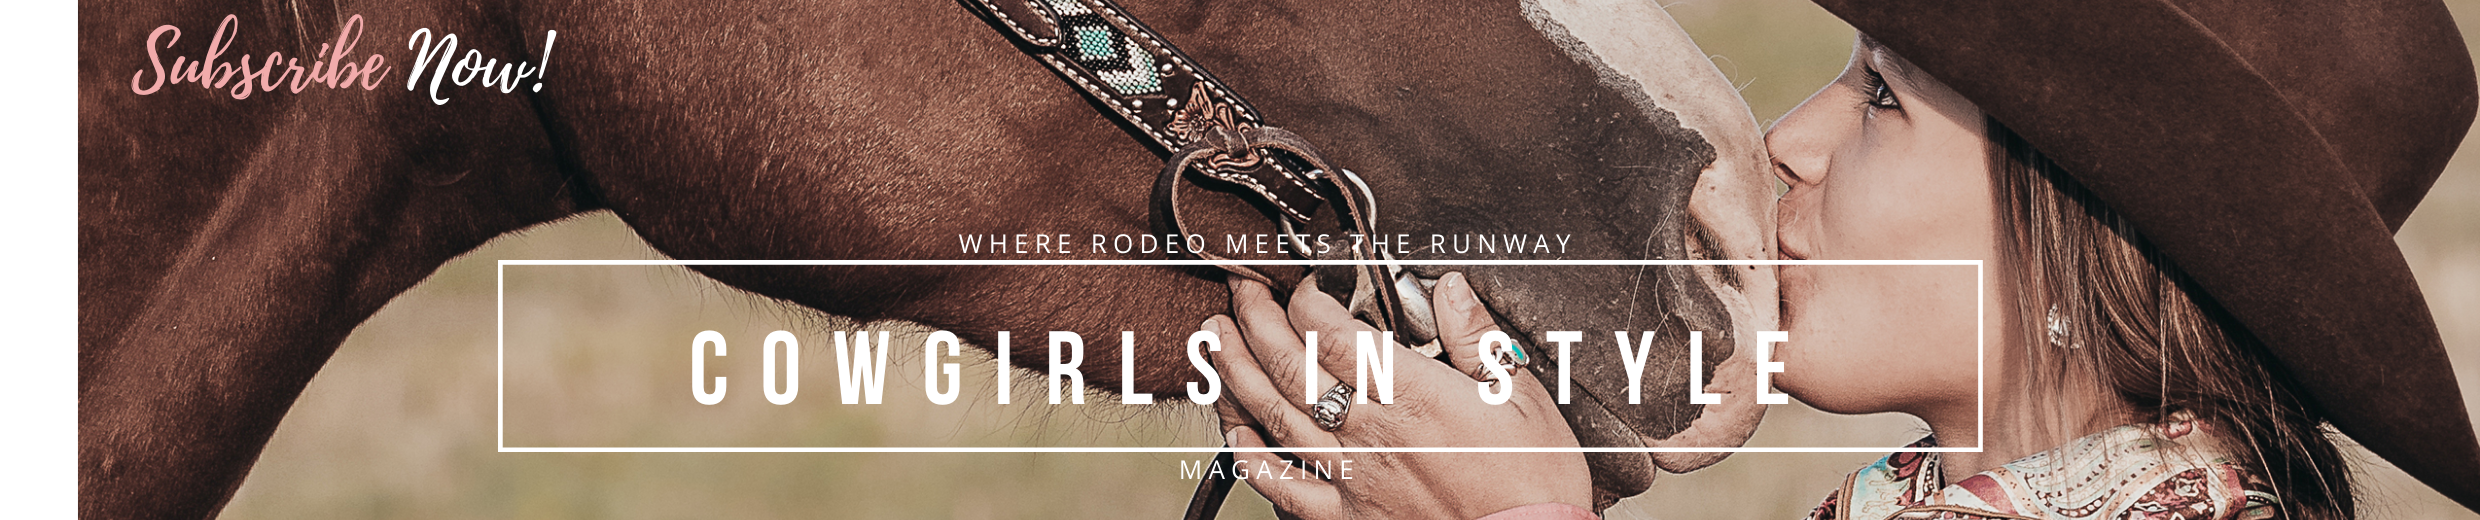 May 2018 - Cowgirls In Style Magazine